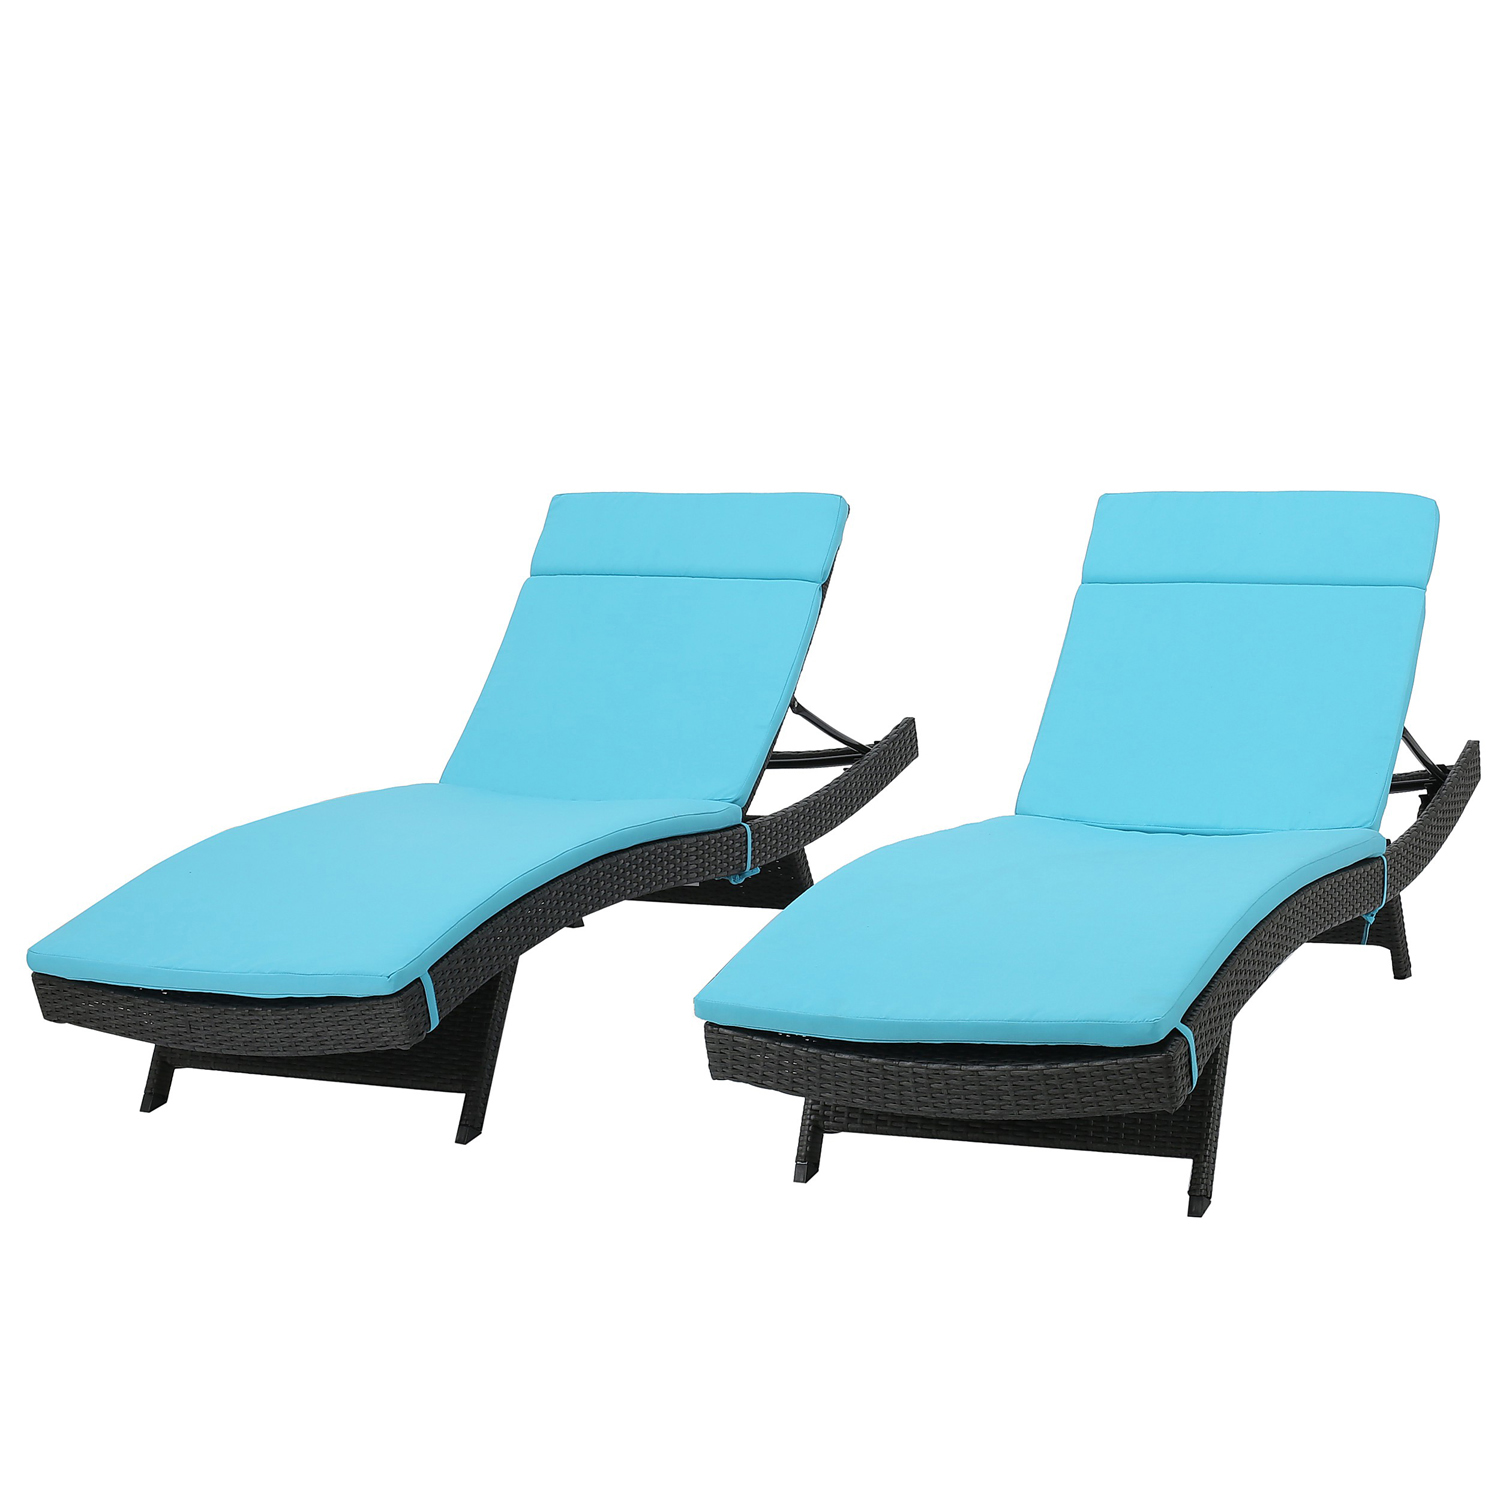 Carlsbad Gray Wicker Chaise Lounge with Blue Cushion Set of 2